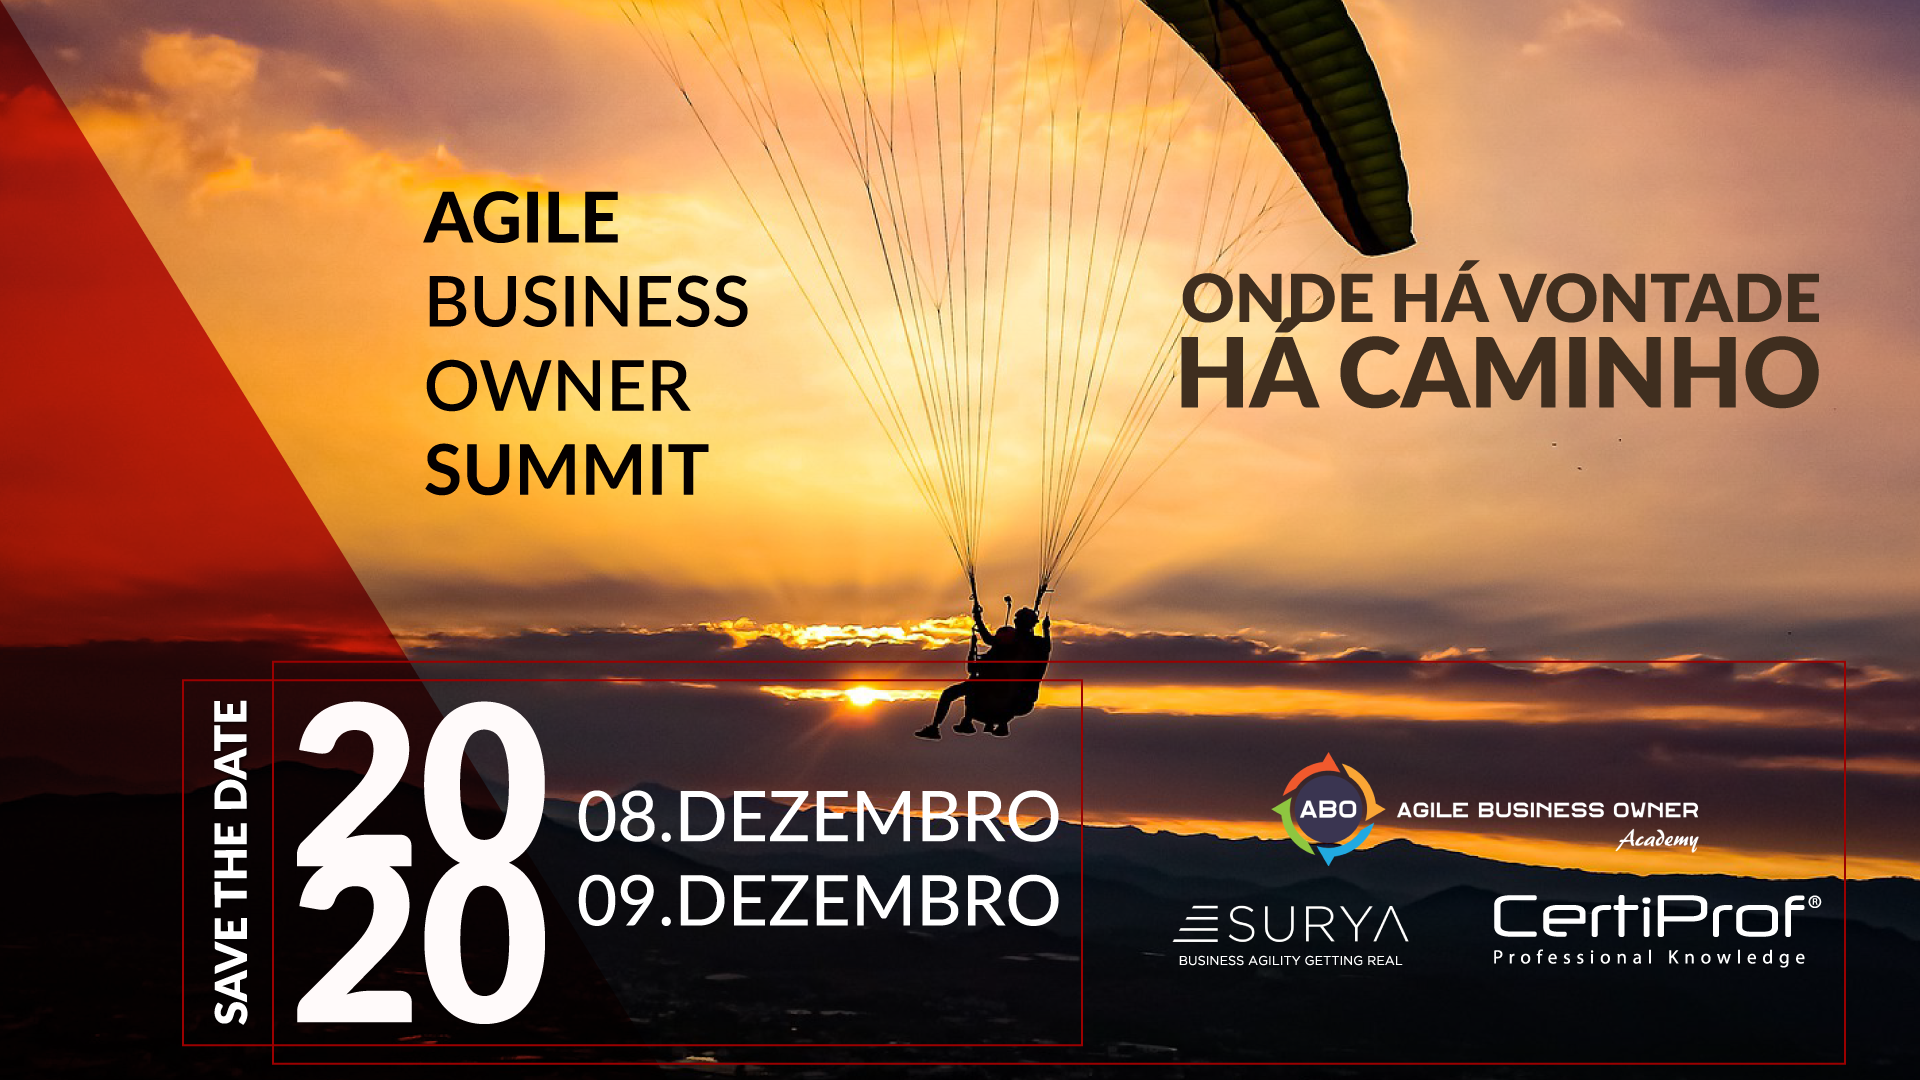 agile business owner summit certiprof